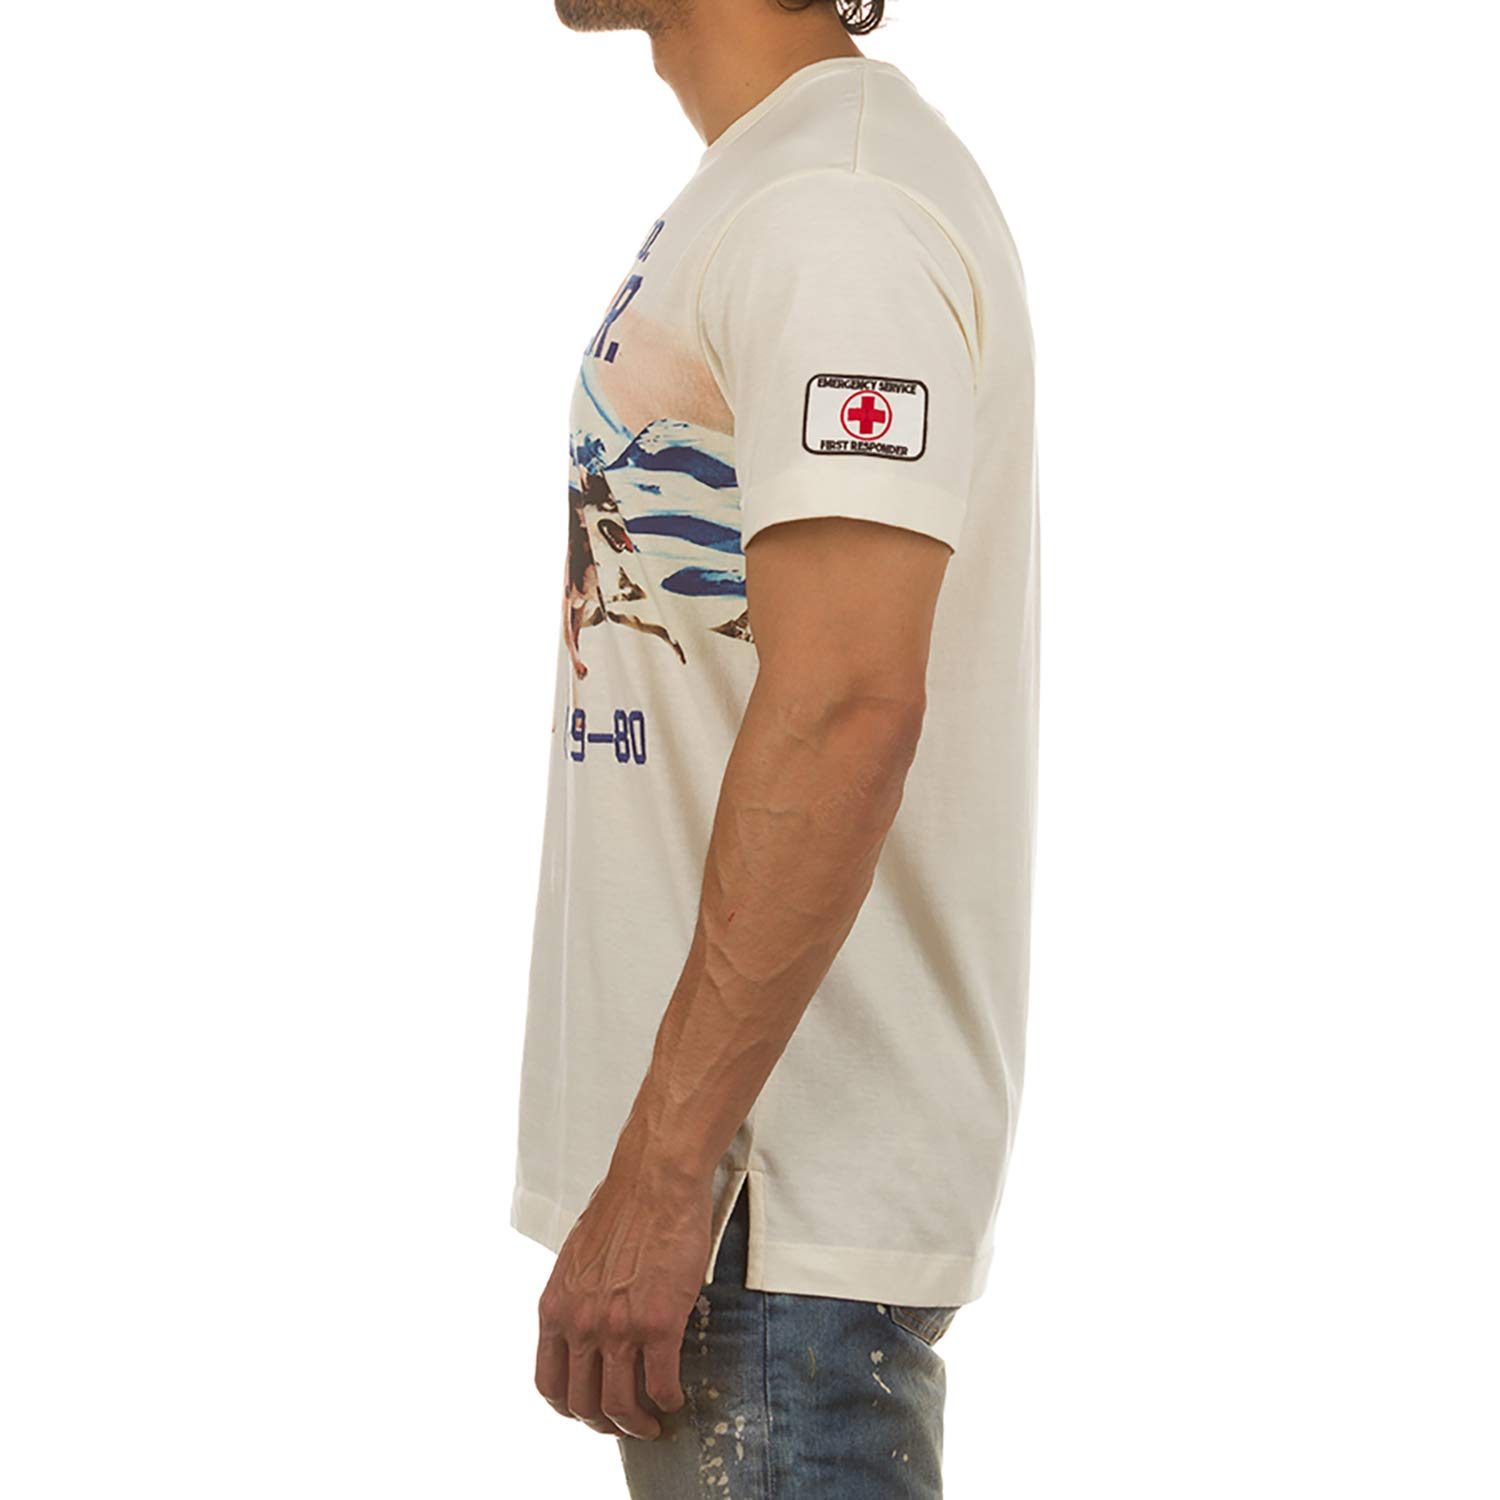 Akoo Patrol and Rescue Short Sleeve Knit Tee in Whisper White 781-9306